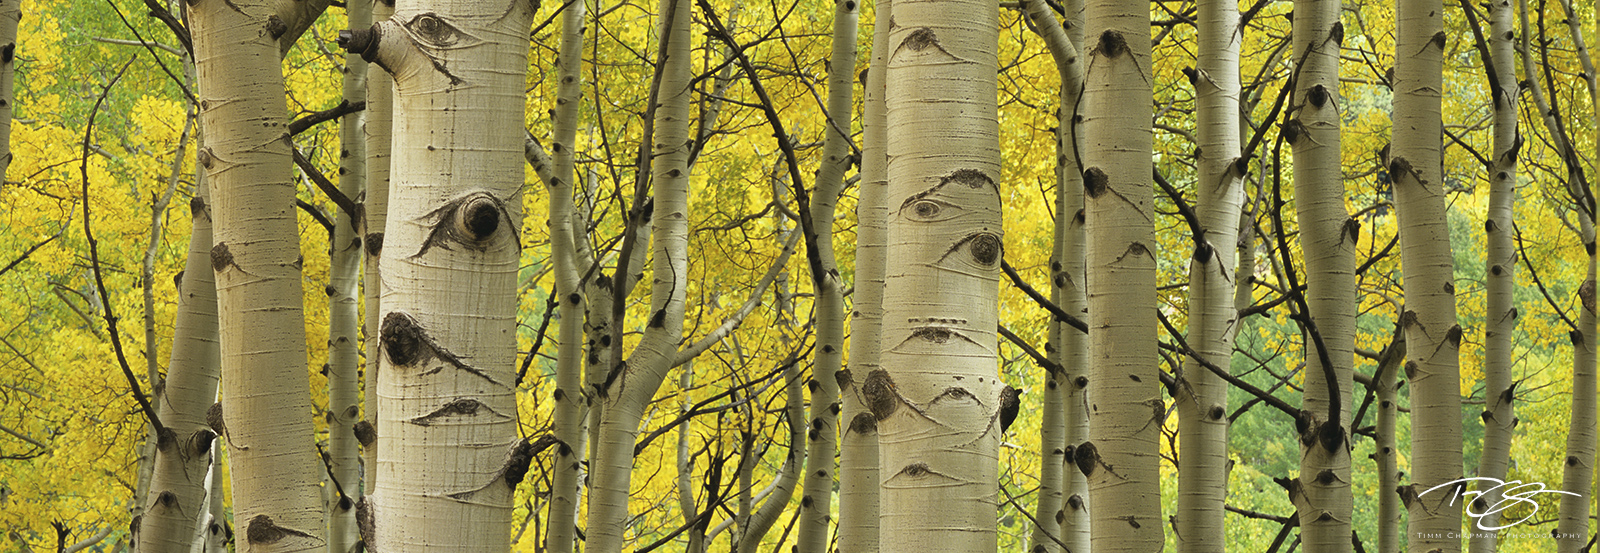 Colorado, aspen, autumn, fallen leaves, yellow leaves, golden canopy, autumn peak, leaves at their peak, photo